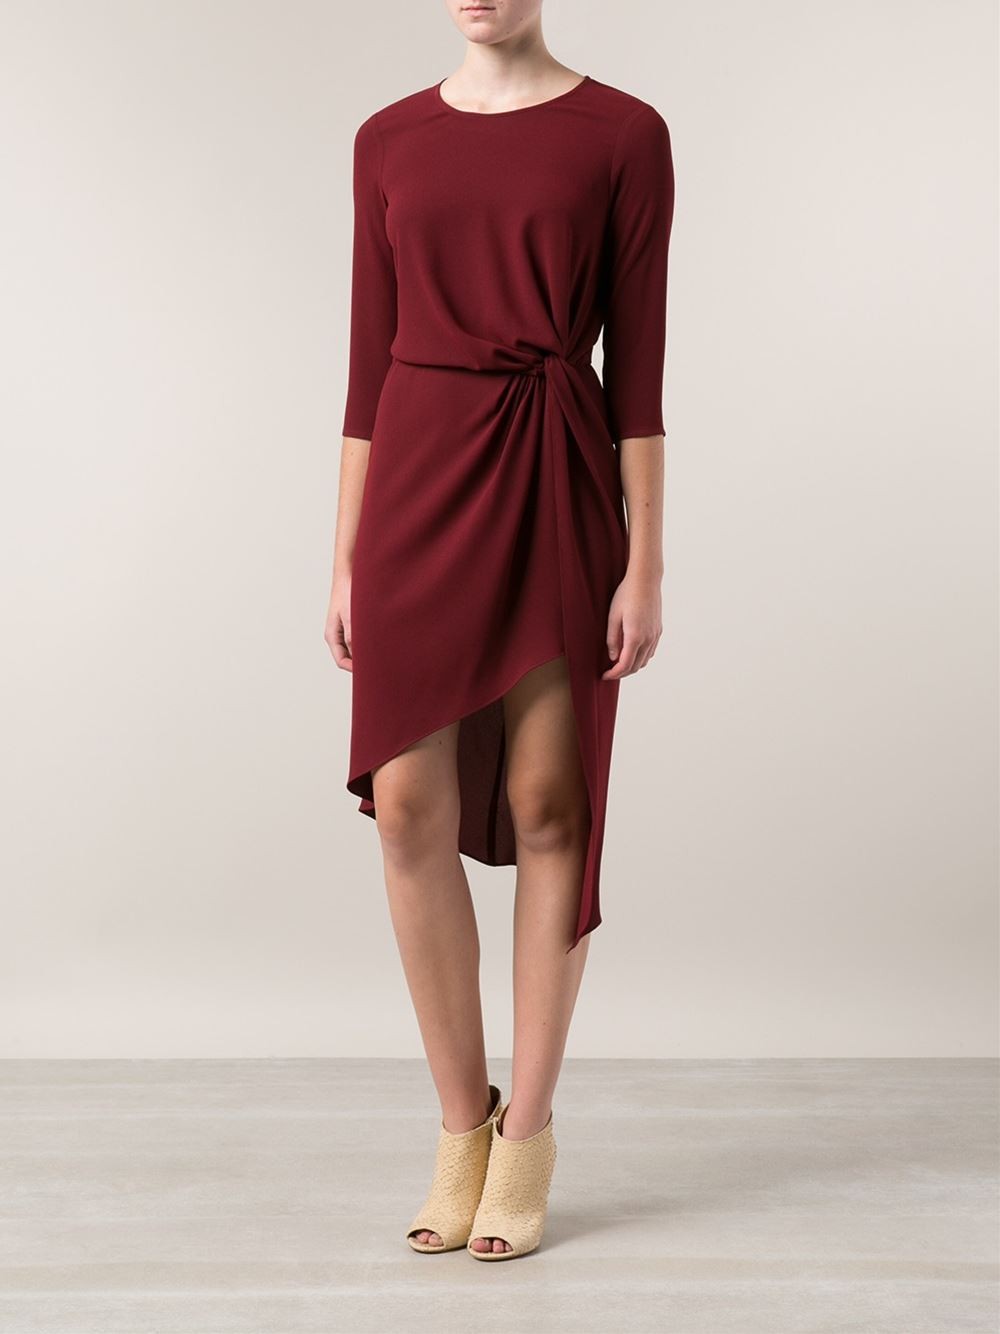 Haute hippie knotted draped dress